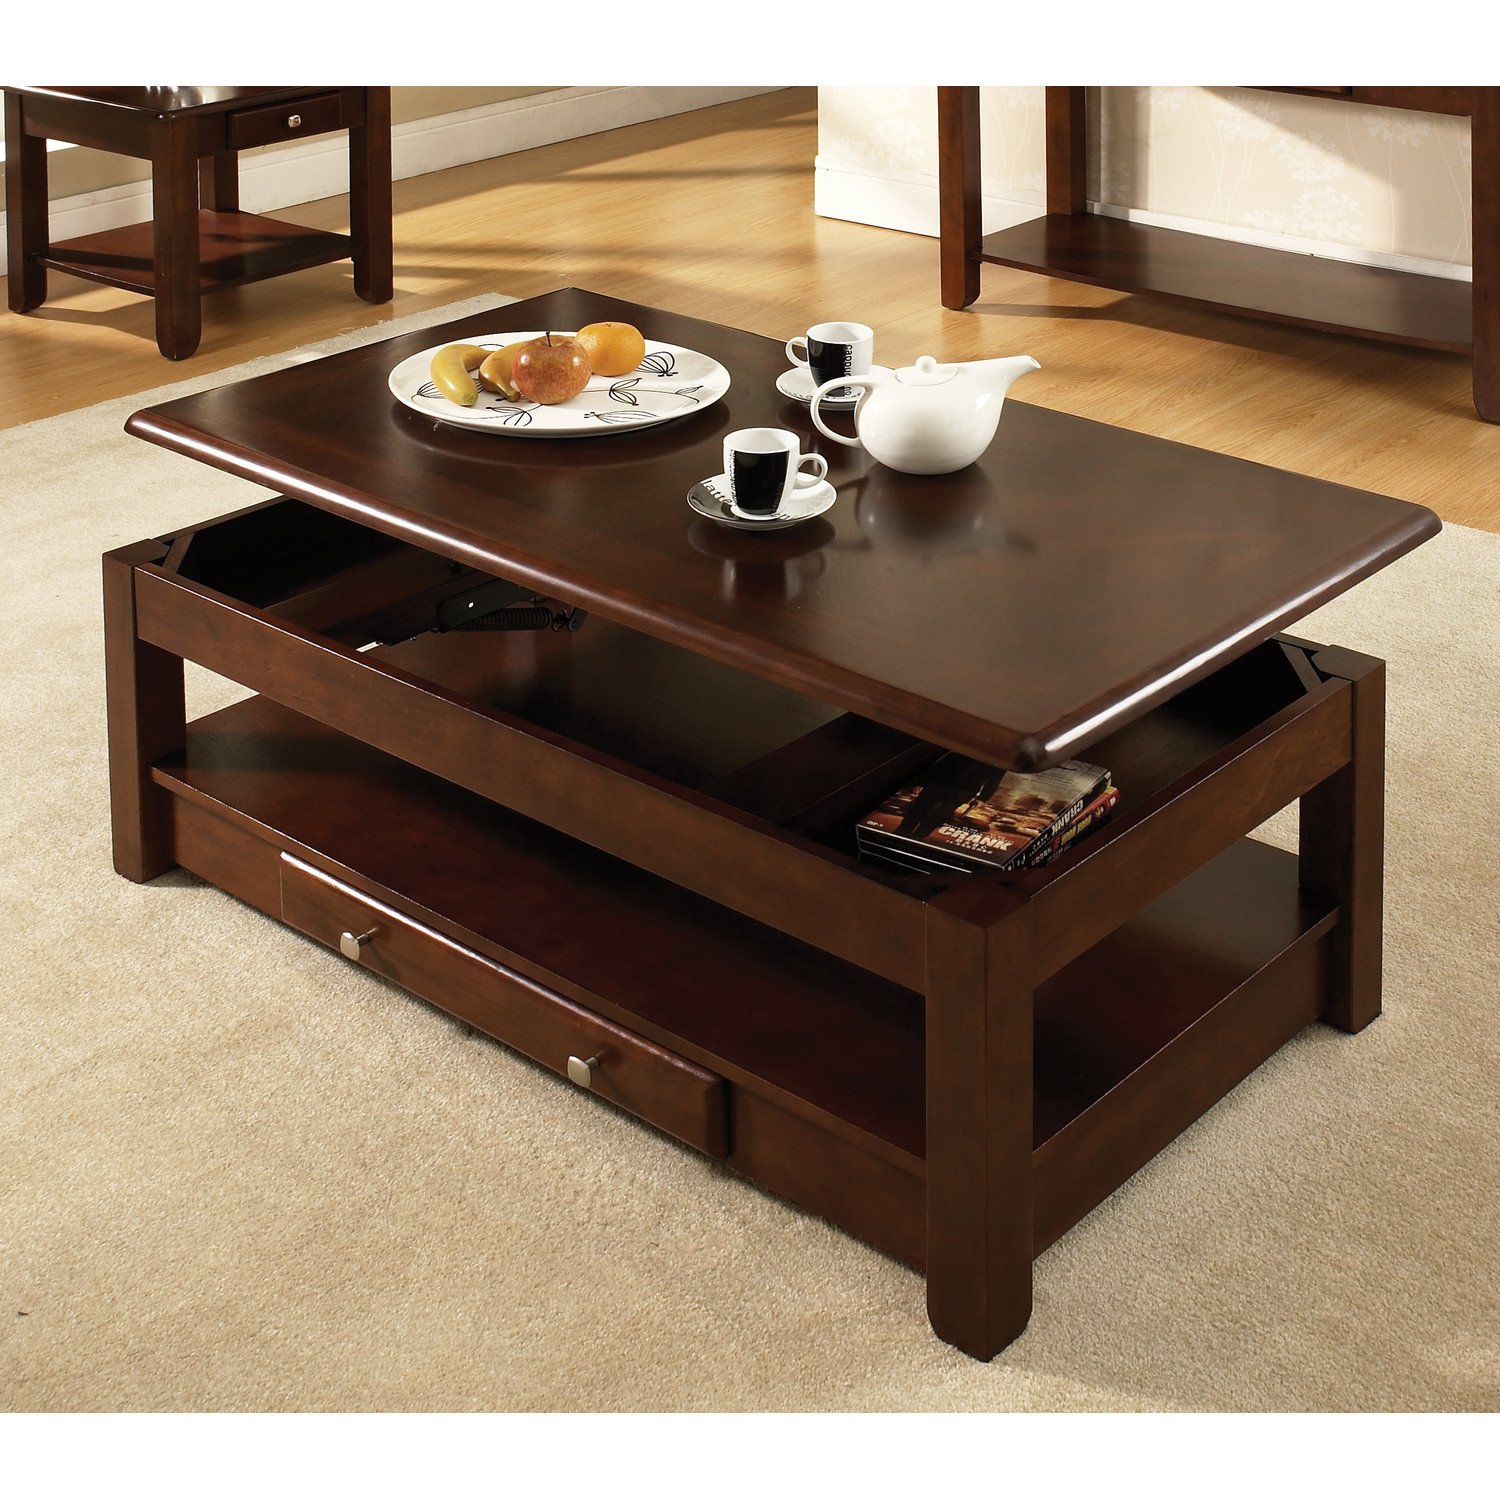 10 The Best Lift Top Coffee Table Set